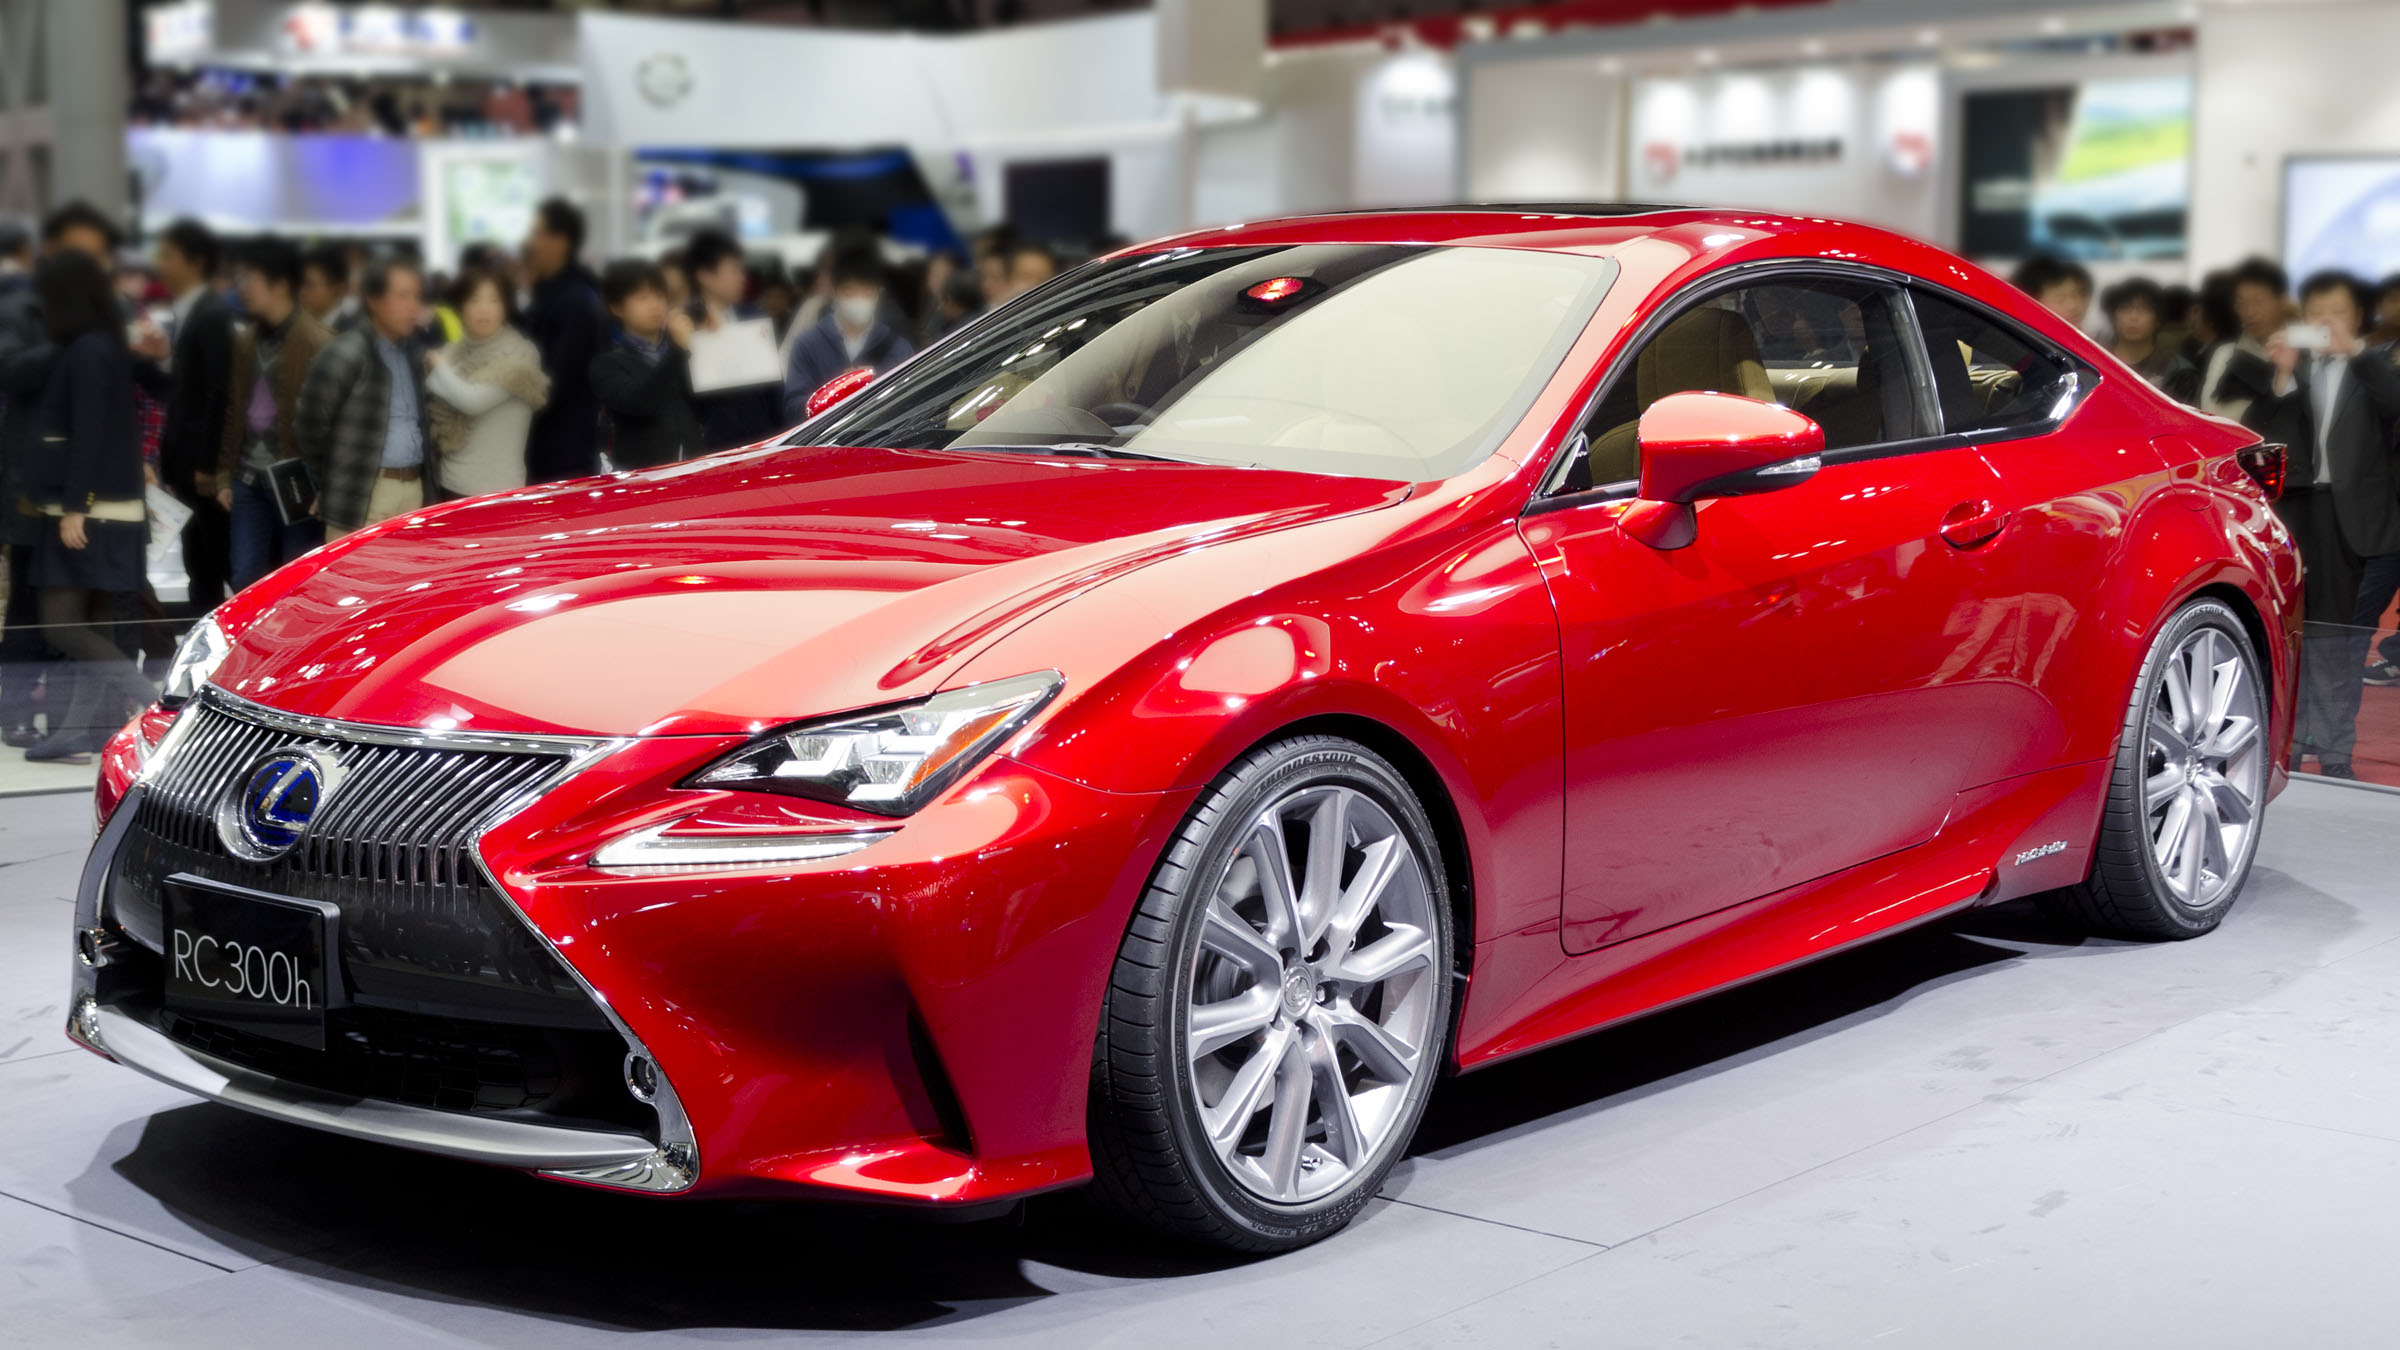 is anyone considering getting the lexus rc 300h lexus rc350 rcf forum. Black Bedroom Furniture Sets. Home Design Ideas